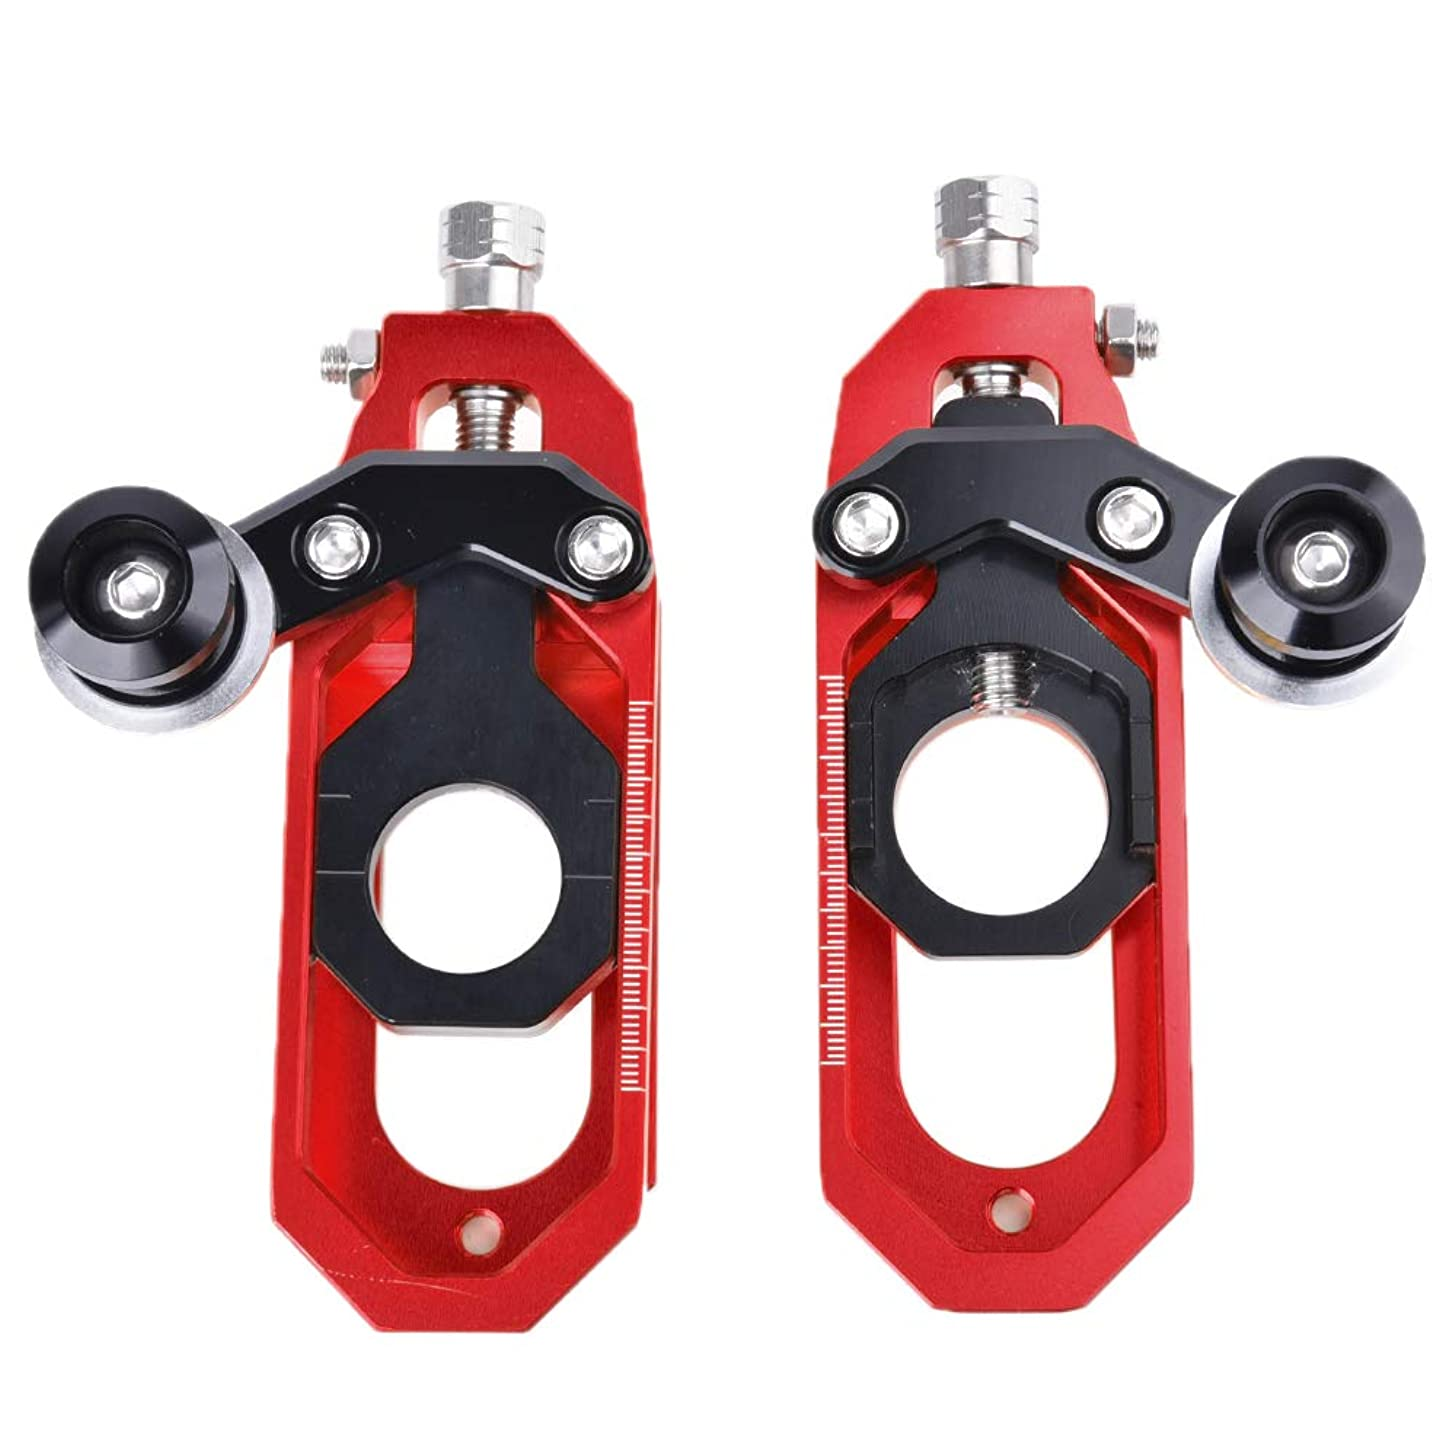 Motorcycle CNC Rear Axle Spindle Chain Adjuster Block Tensioners for Yamaha YZFR6 YZF-R6 YZFR6 2008 2009 2010 2011 2012 2013 2014 2015 after market (Red)